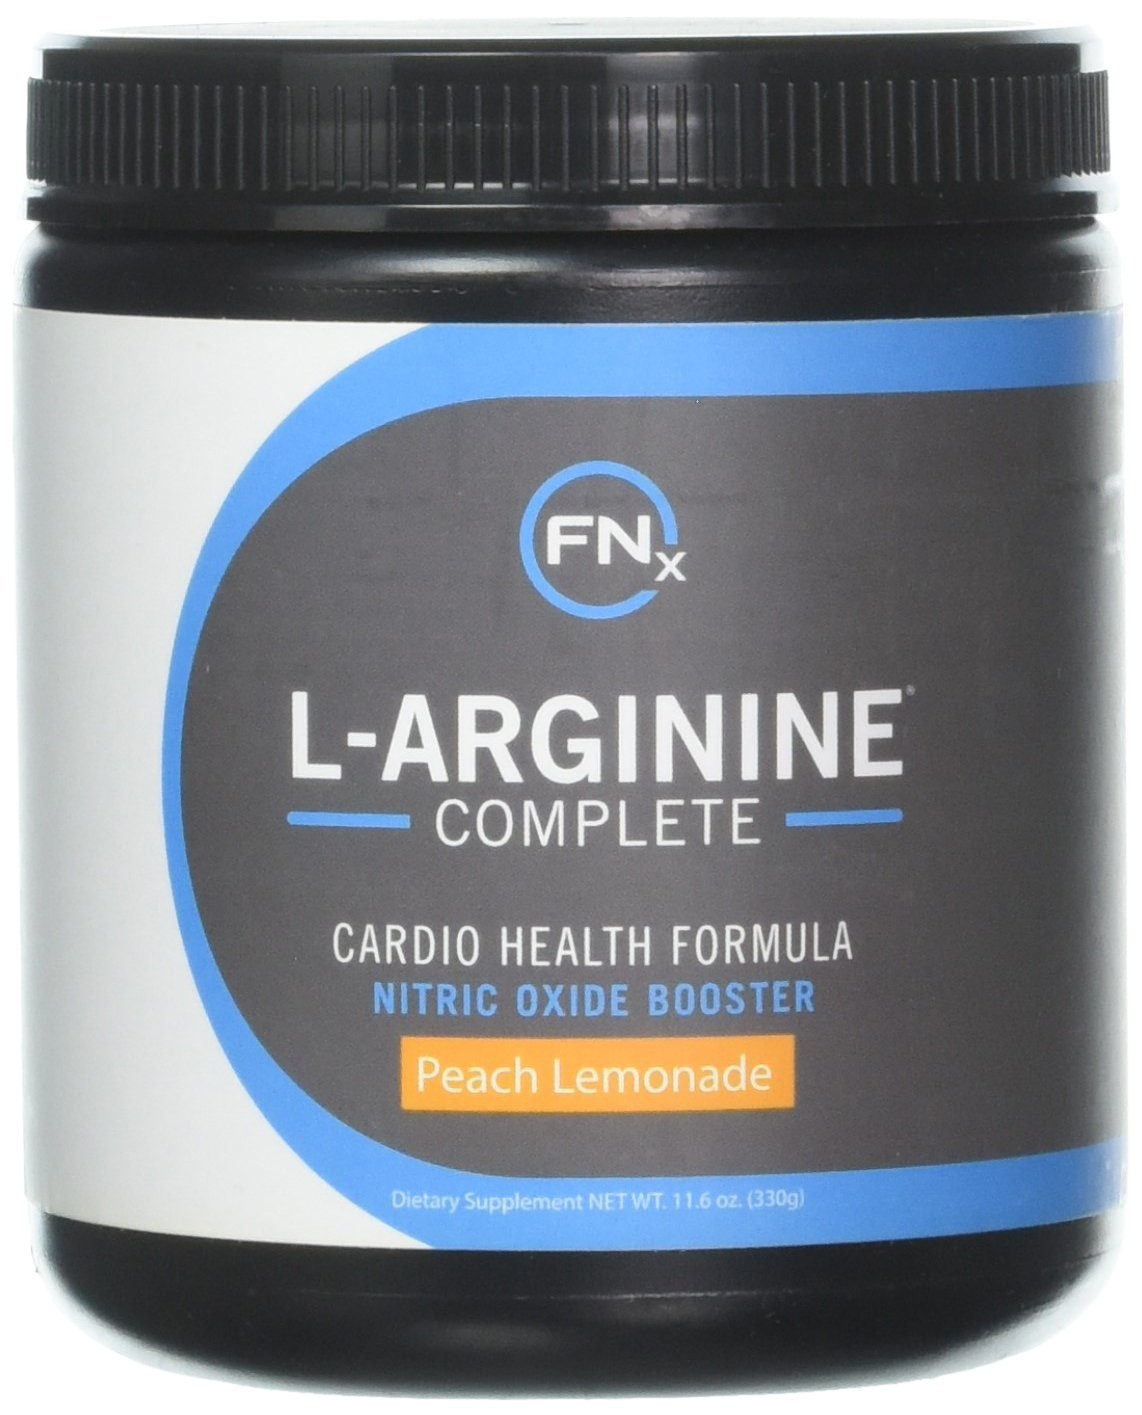 Fenix Nutrition L-Arginine Complete, Peach Lemonade - 5000mg L Arginine Capsules reduces the risk of heart disease, Nitric Oxide Booster, Natural Supplement, Increases Energy and Endurance by Fenix Nutrition